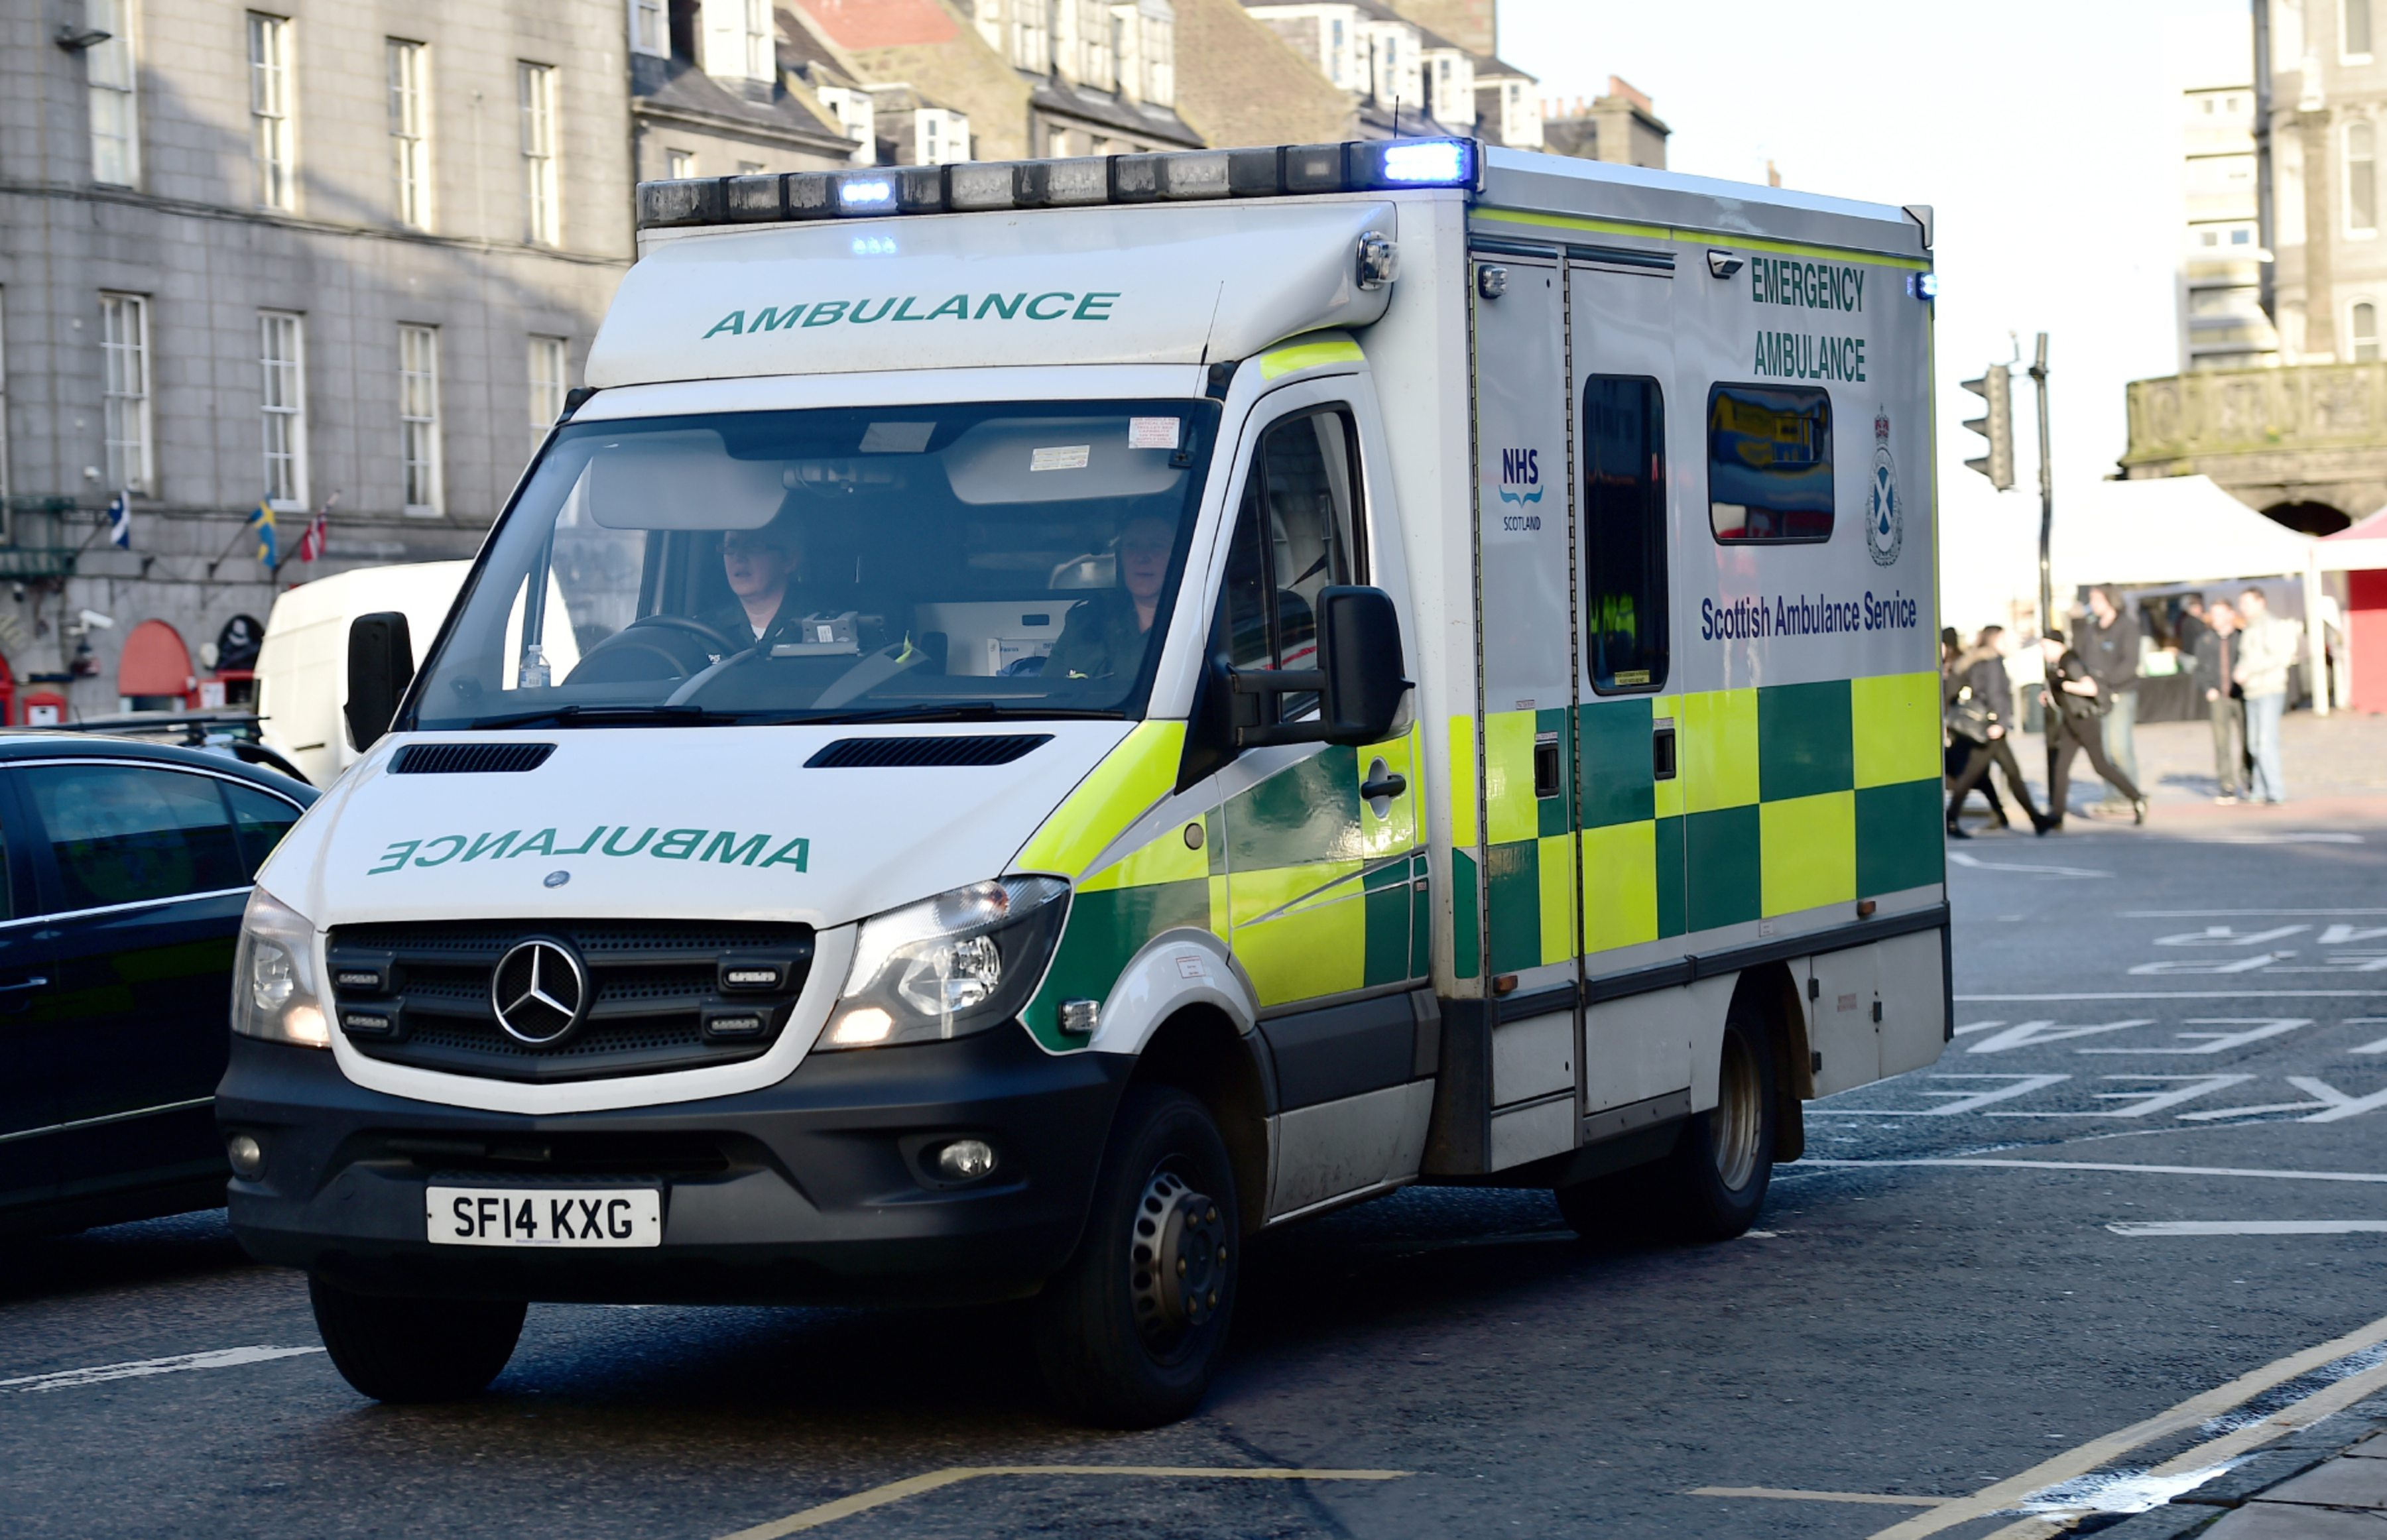 An ambulance was stolen from a property in Kemnay